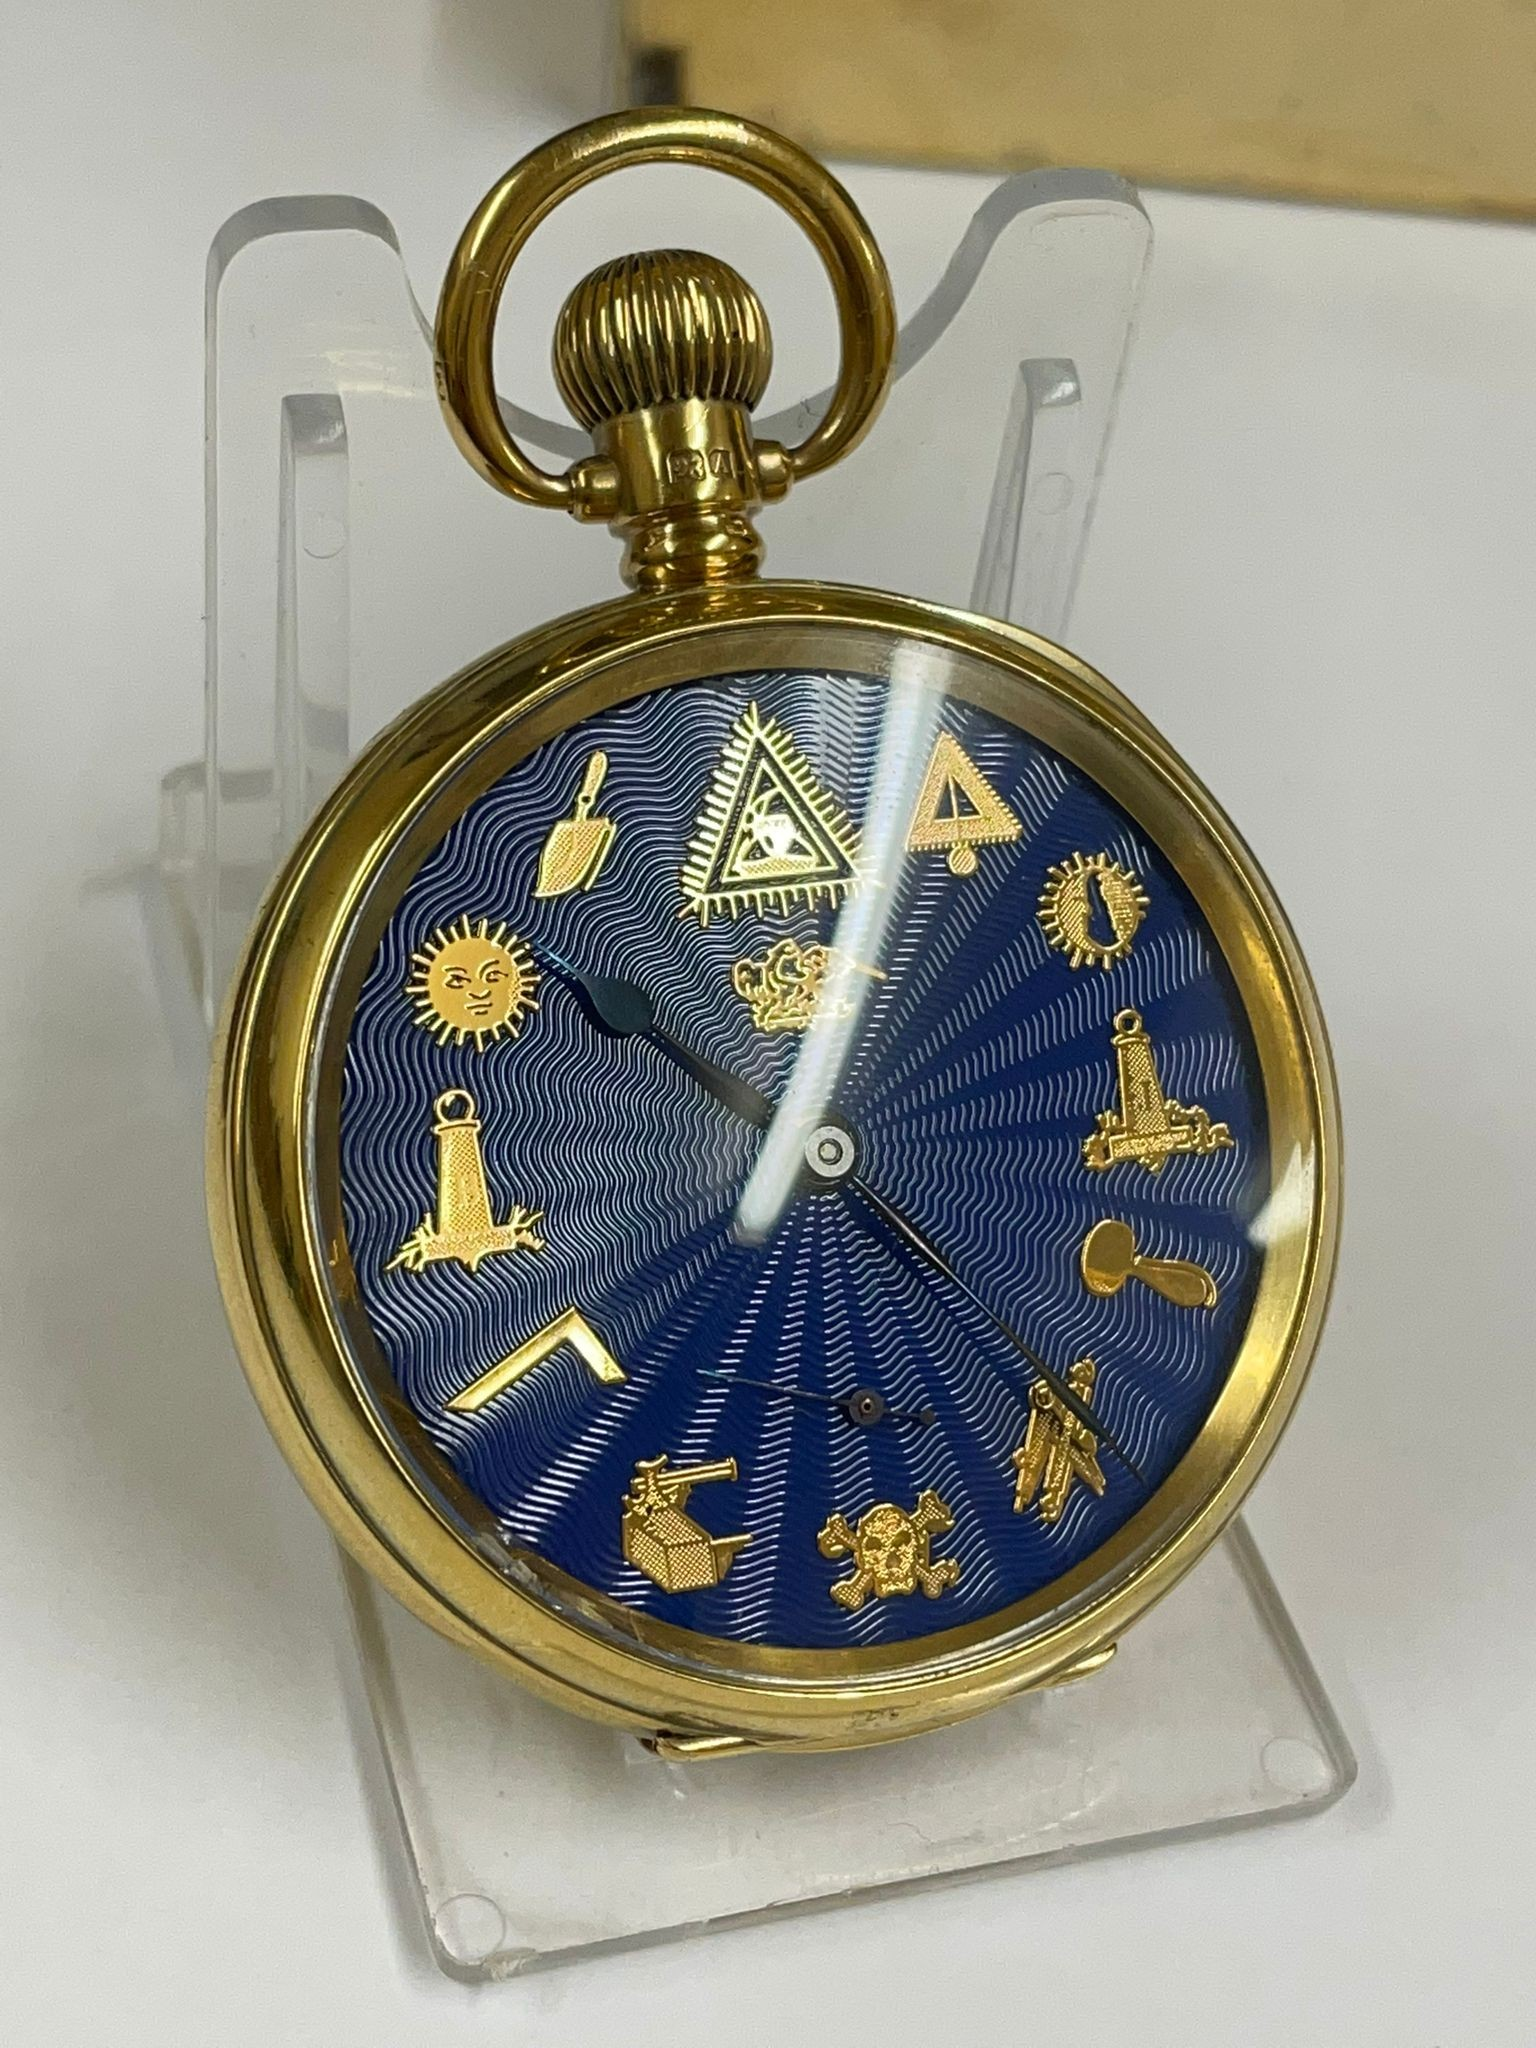 Vintage Masonic Rolex pocket watch with stand good condition and good working order but no - Image 21 of 21